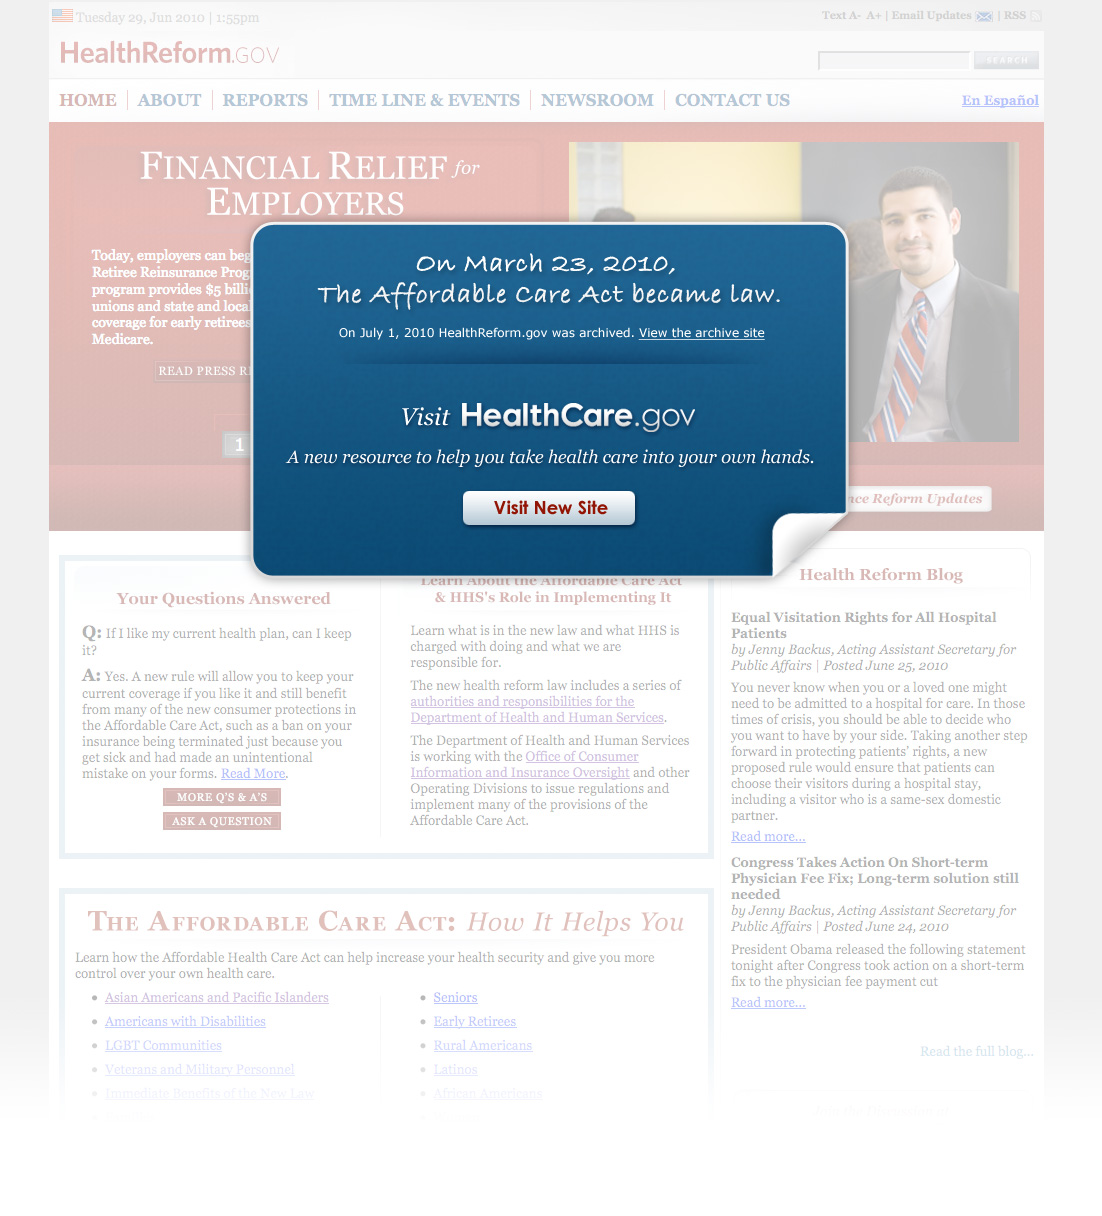 On March 23, 2010, the Affordable Care Act became law.  On July 1, 2010 HealthReform.gov was archived.